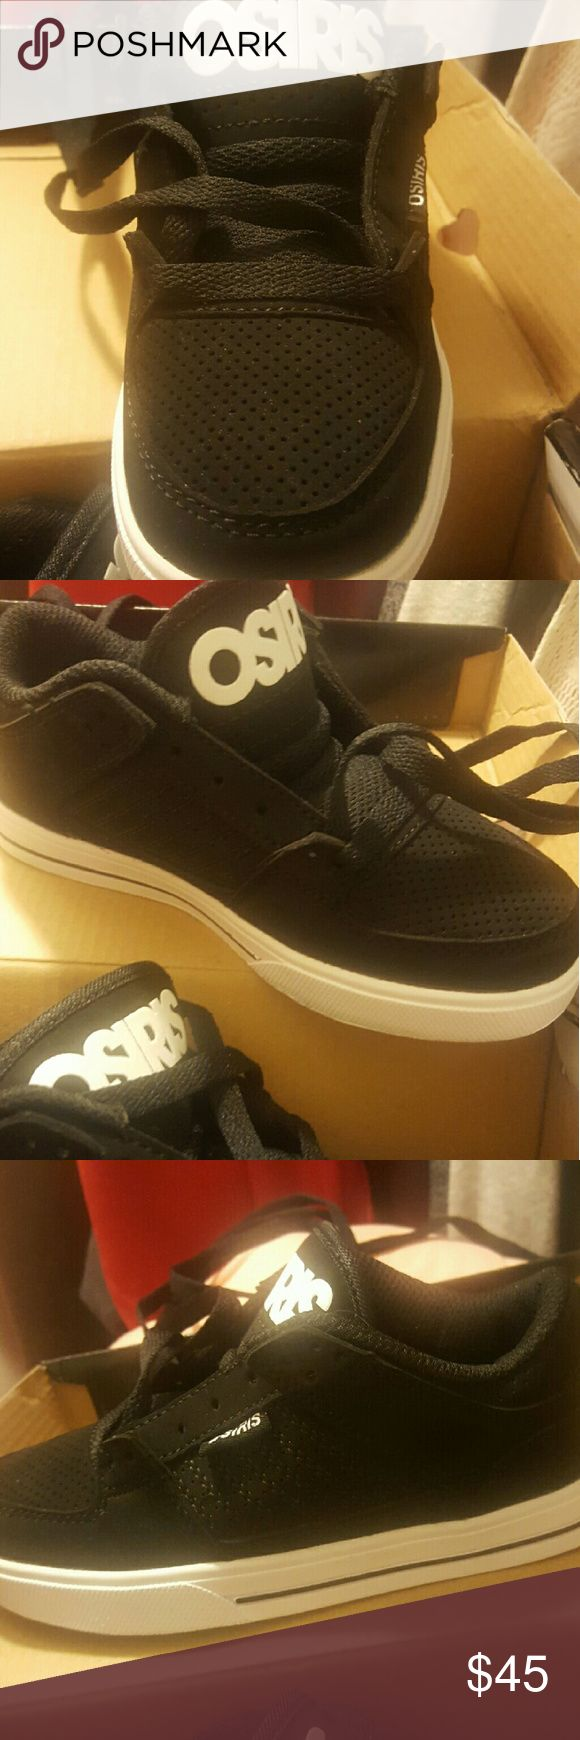 Boys size 13 never worn shoes Brand new never worn boys size 13 Osiris Shoes Sneakers